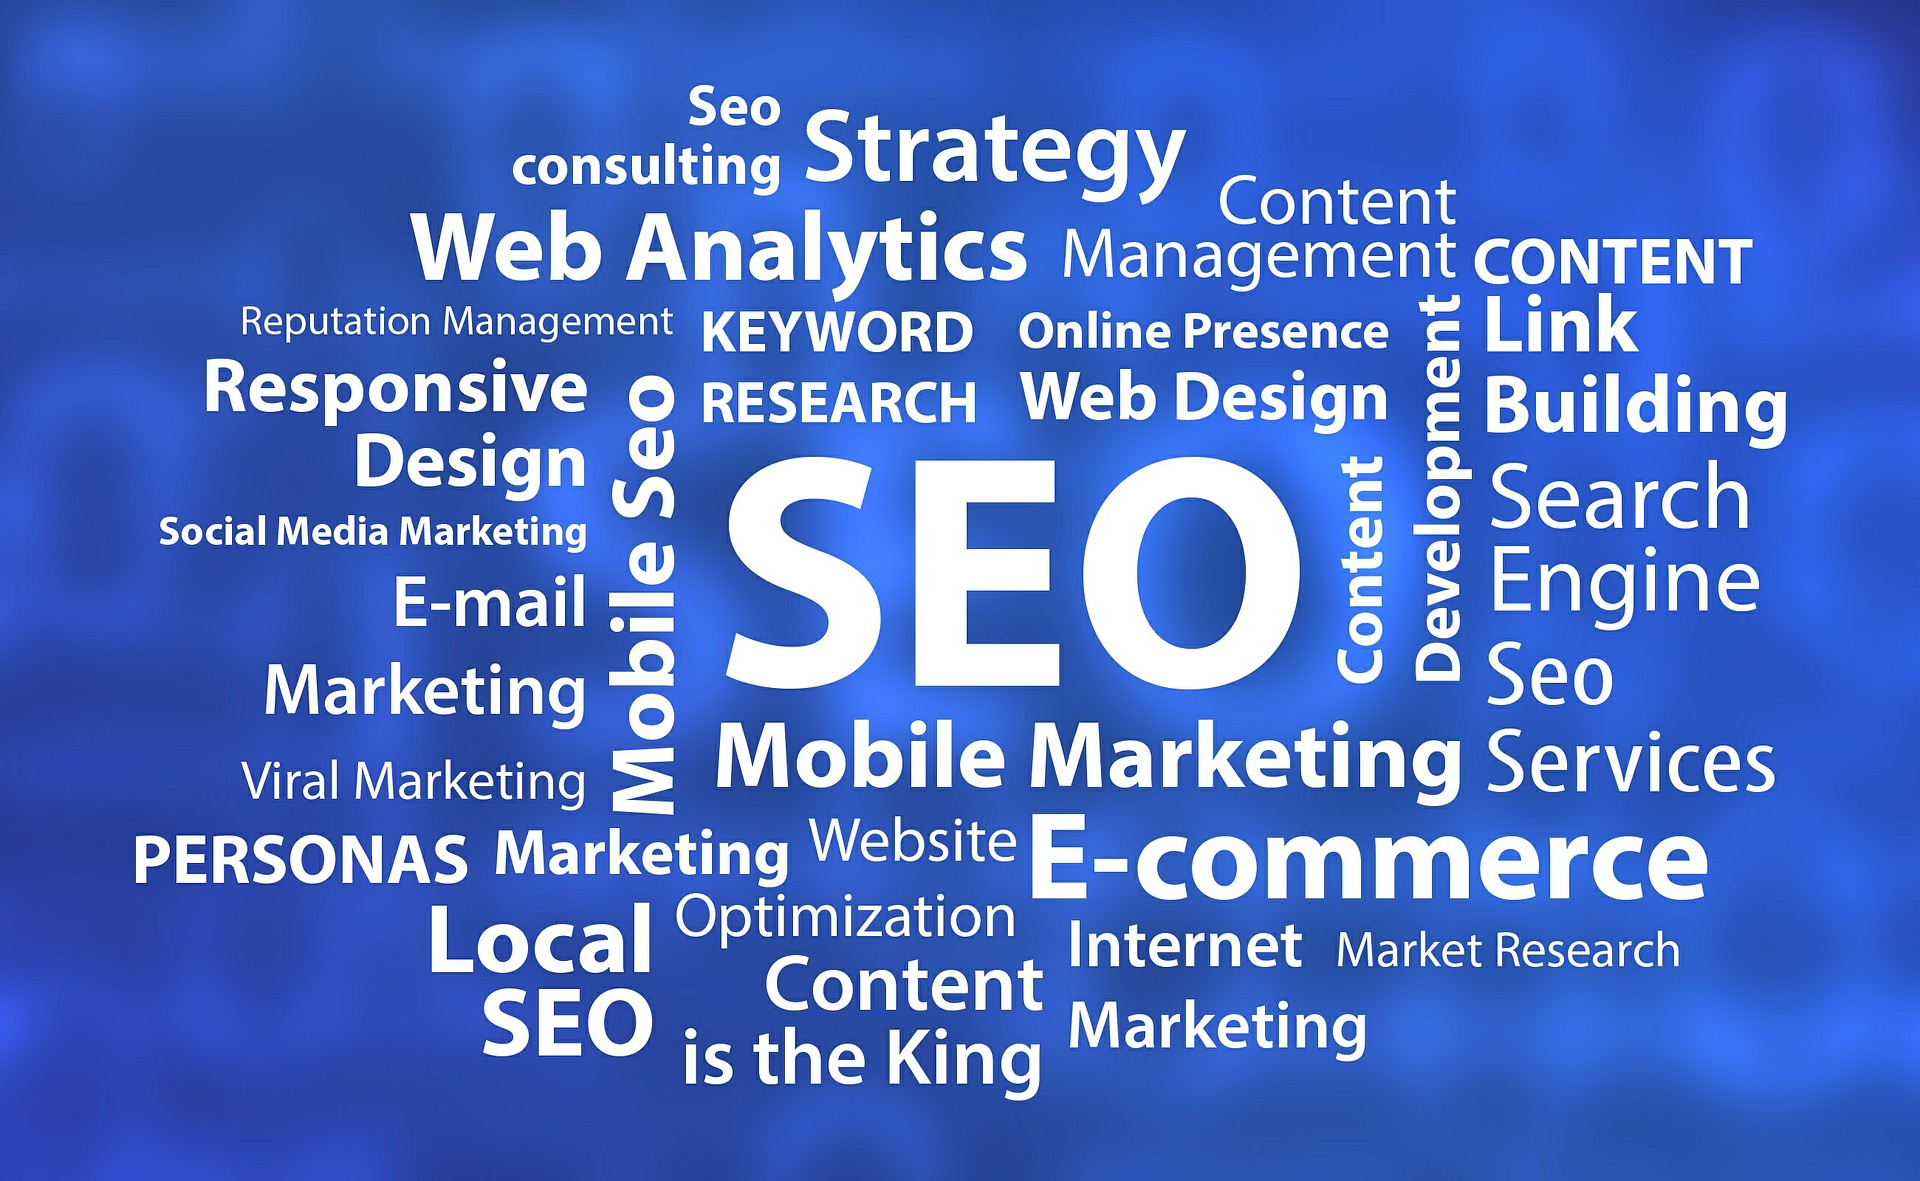 Why SEO Services are important for the website?